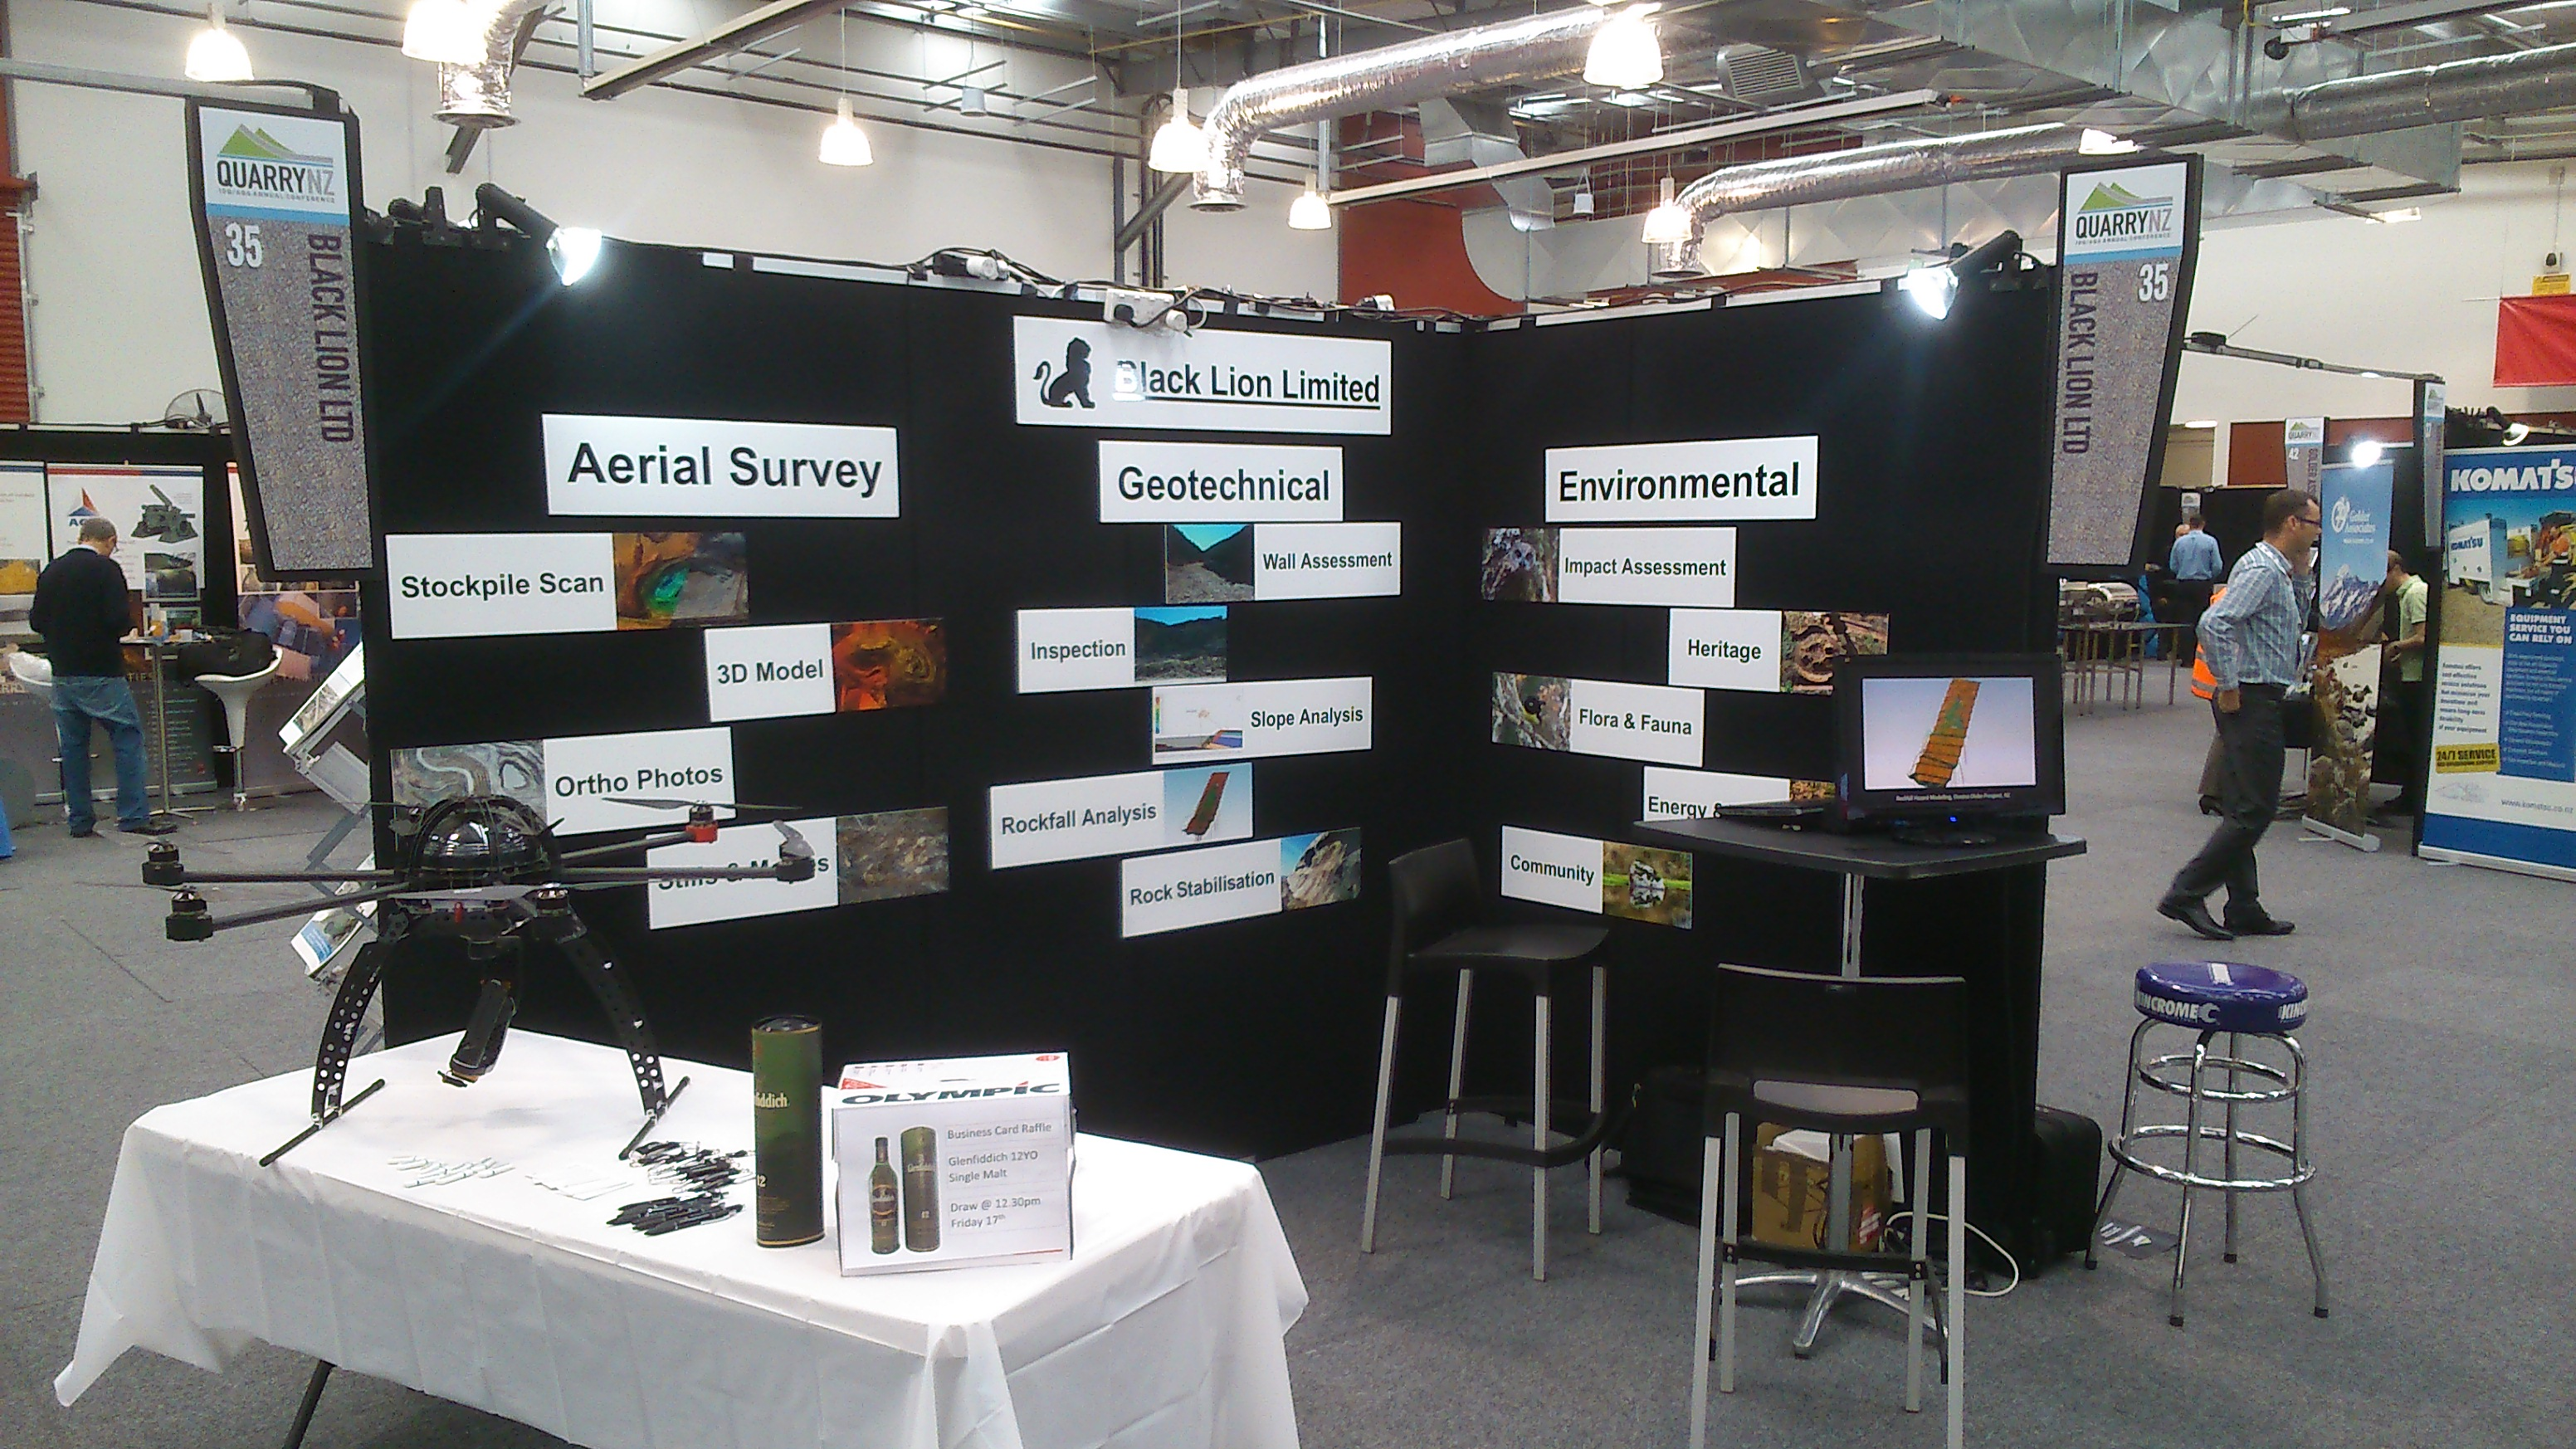 QuarryNZ 2015 Exhibition